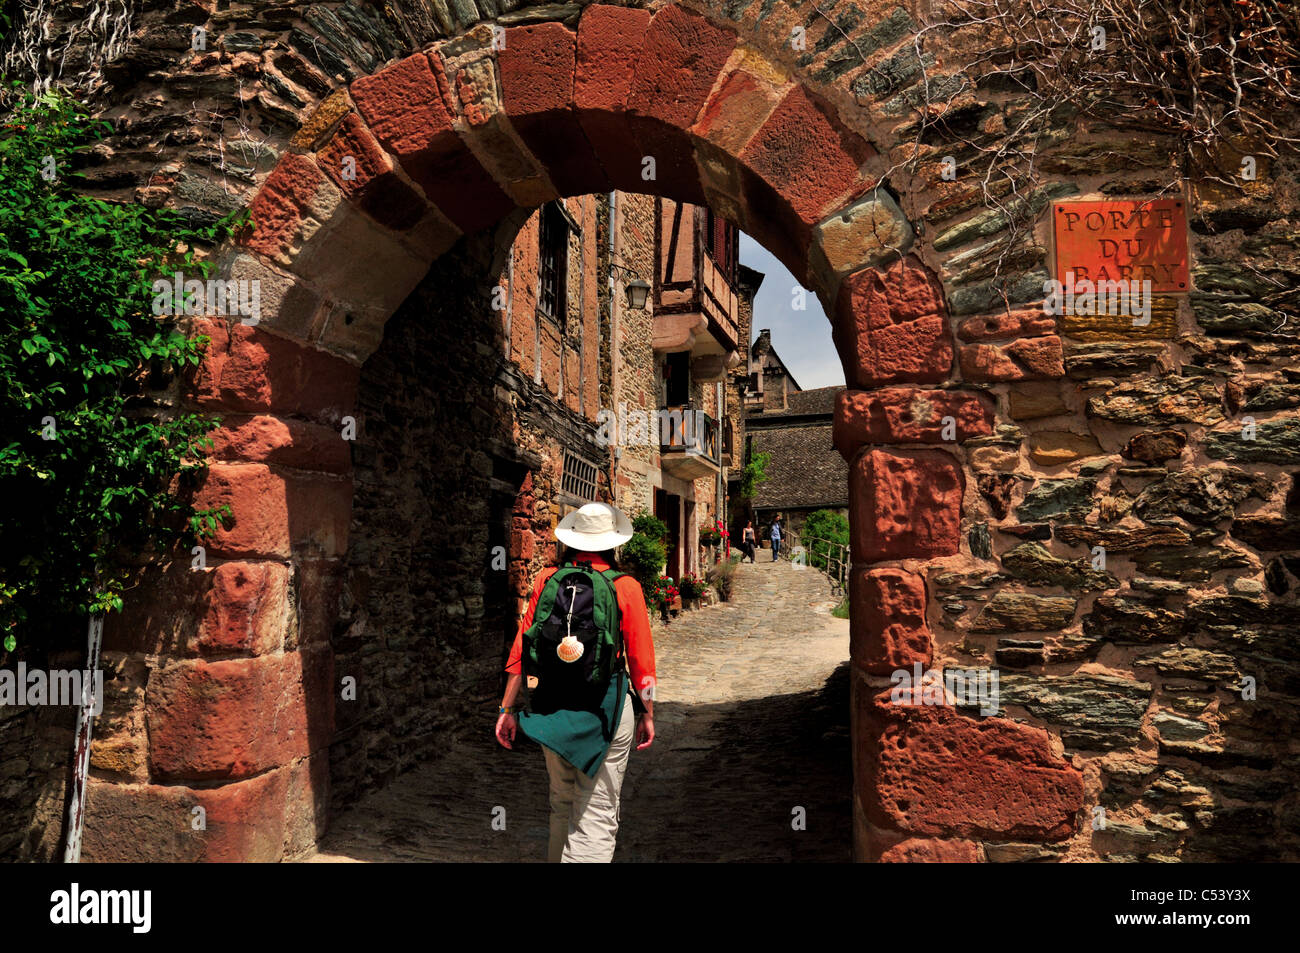 France, St. James Way: Woman passing the medieval village gate 'Porte du Barry' in Conques - Stock Image